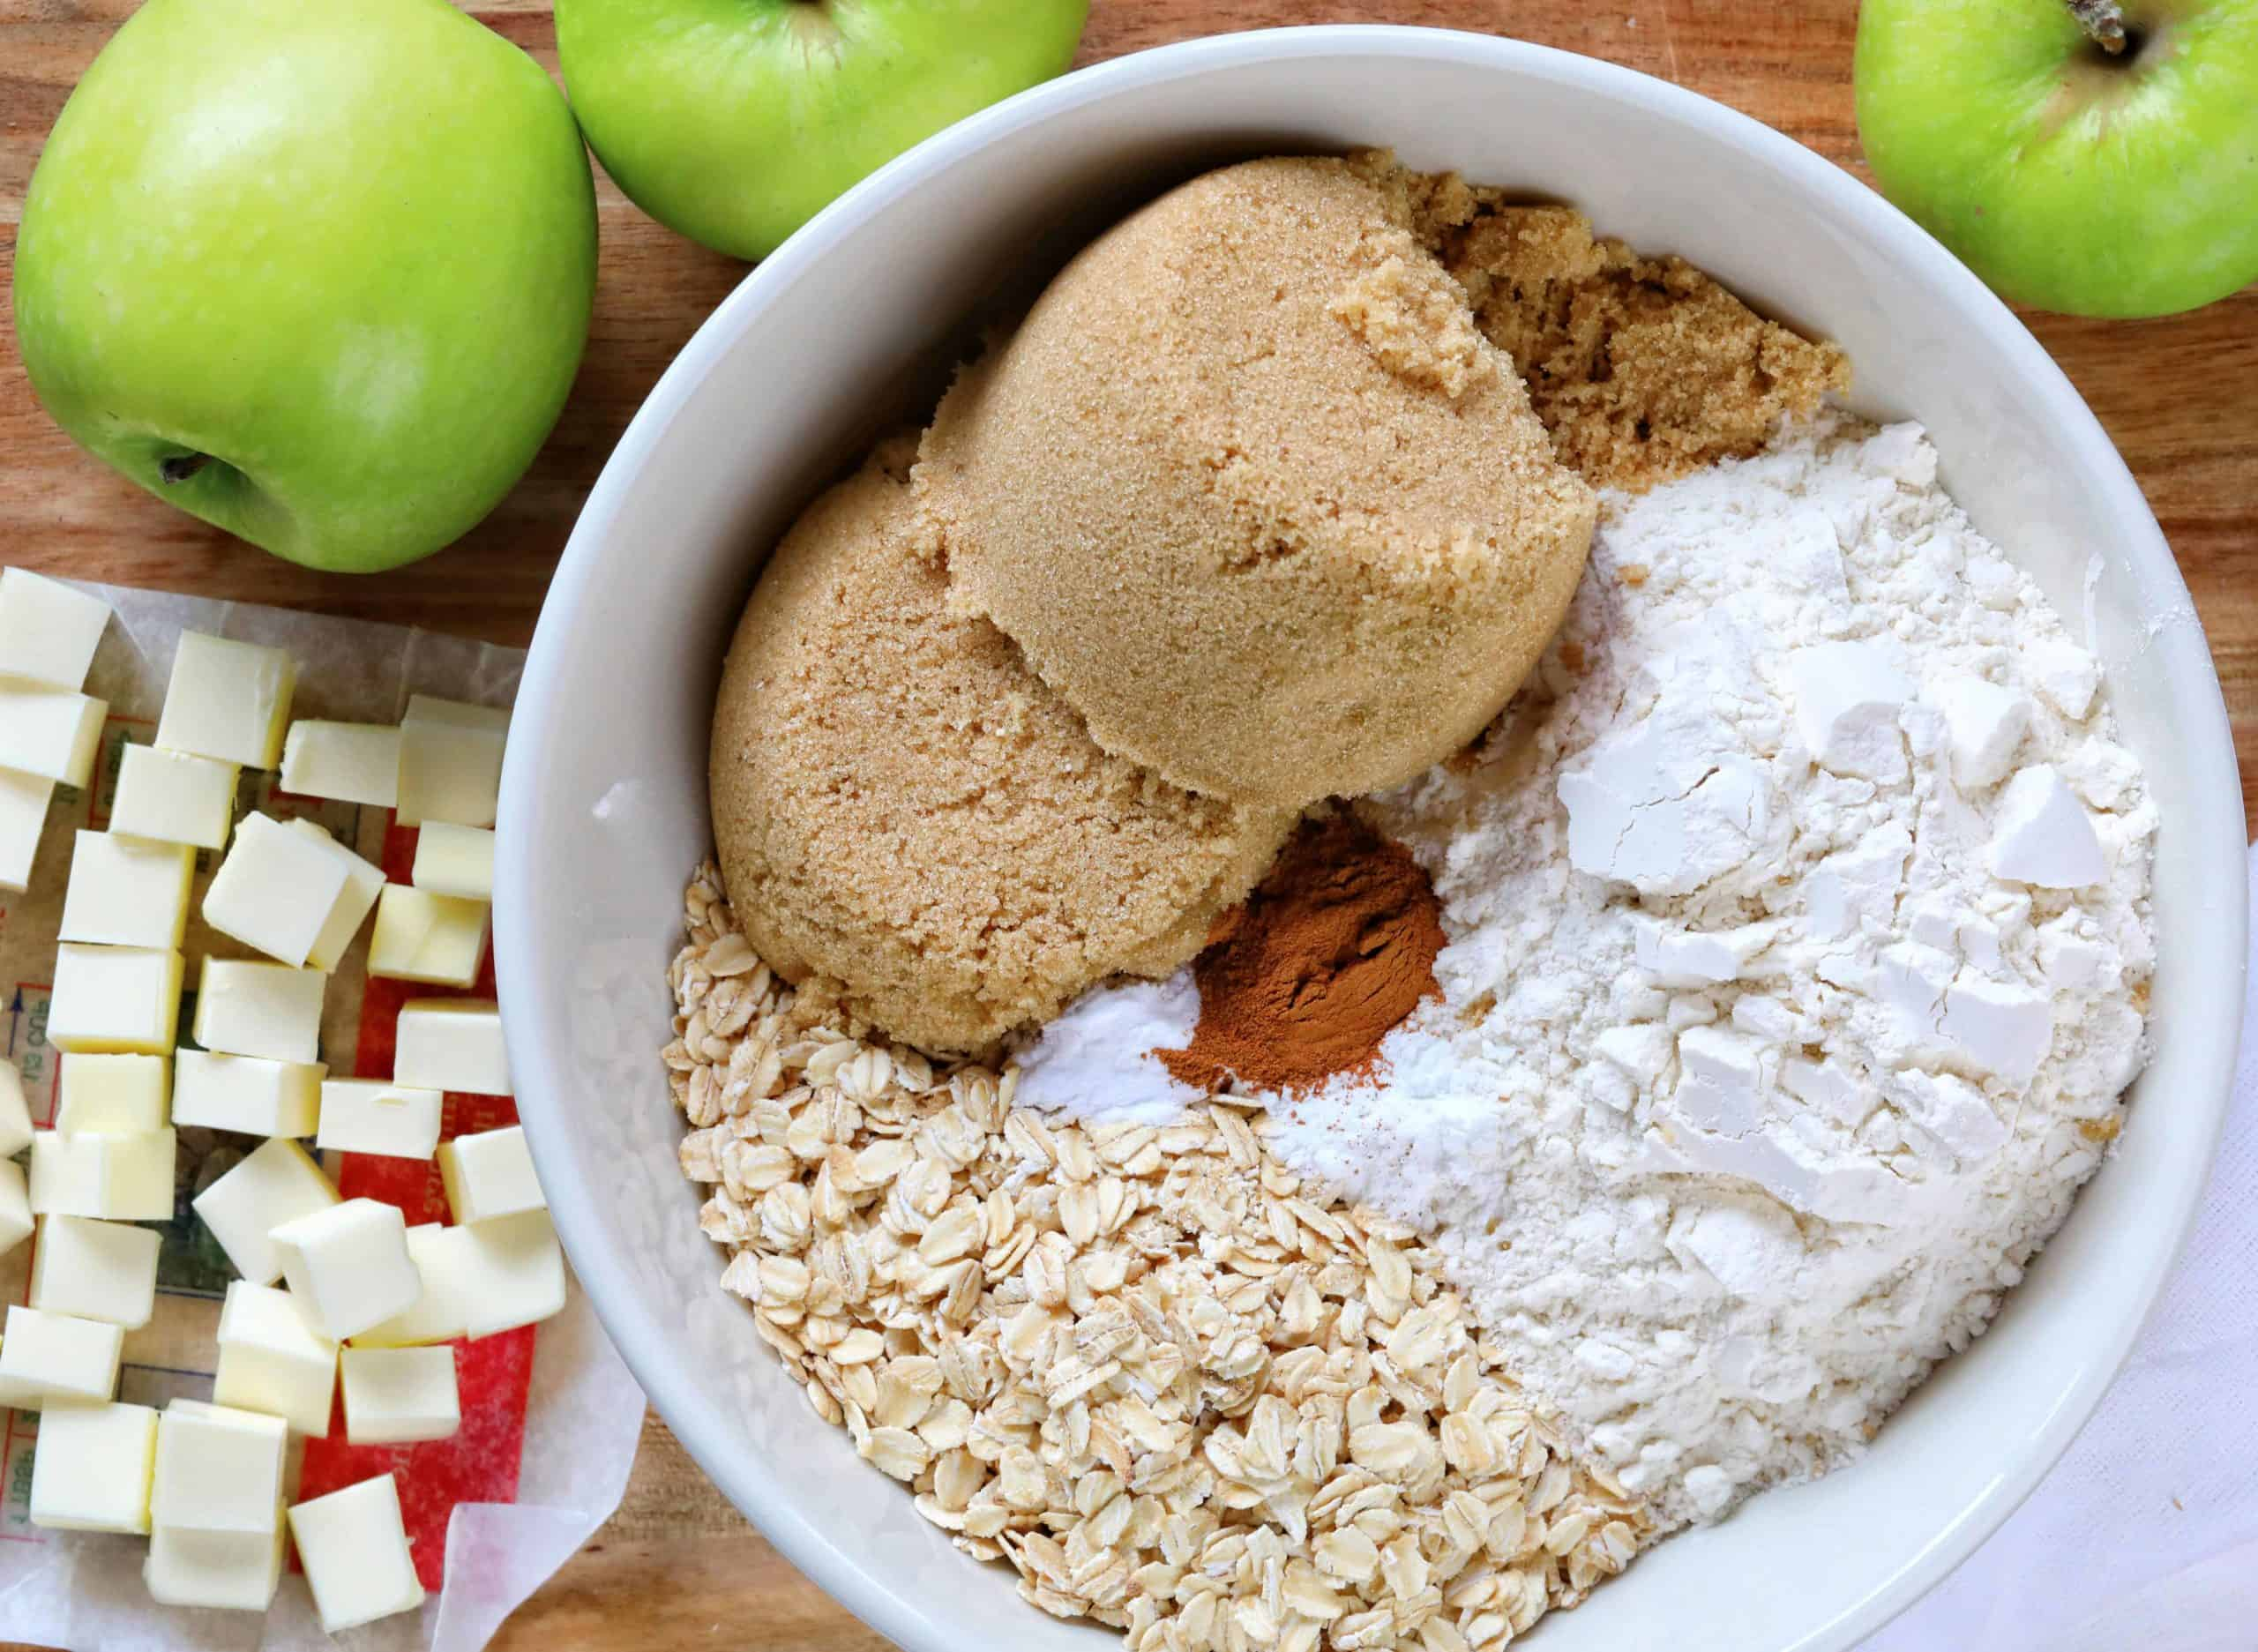 How to Make Apple Crisp, Raw Ingredients in Bowl and on Cutting Board